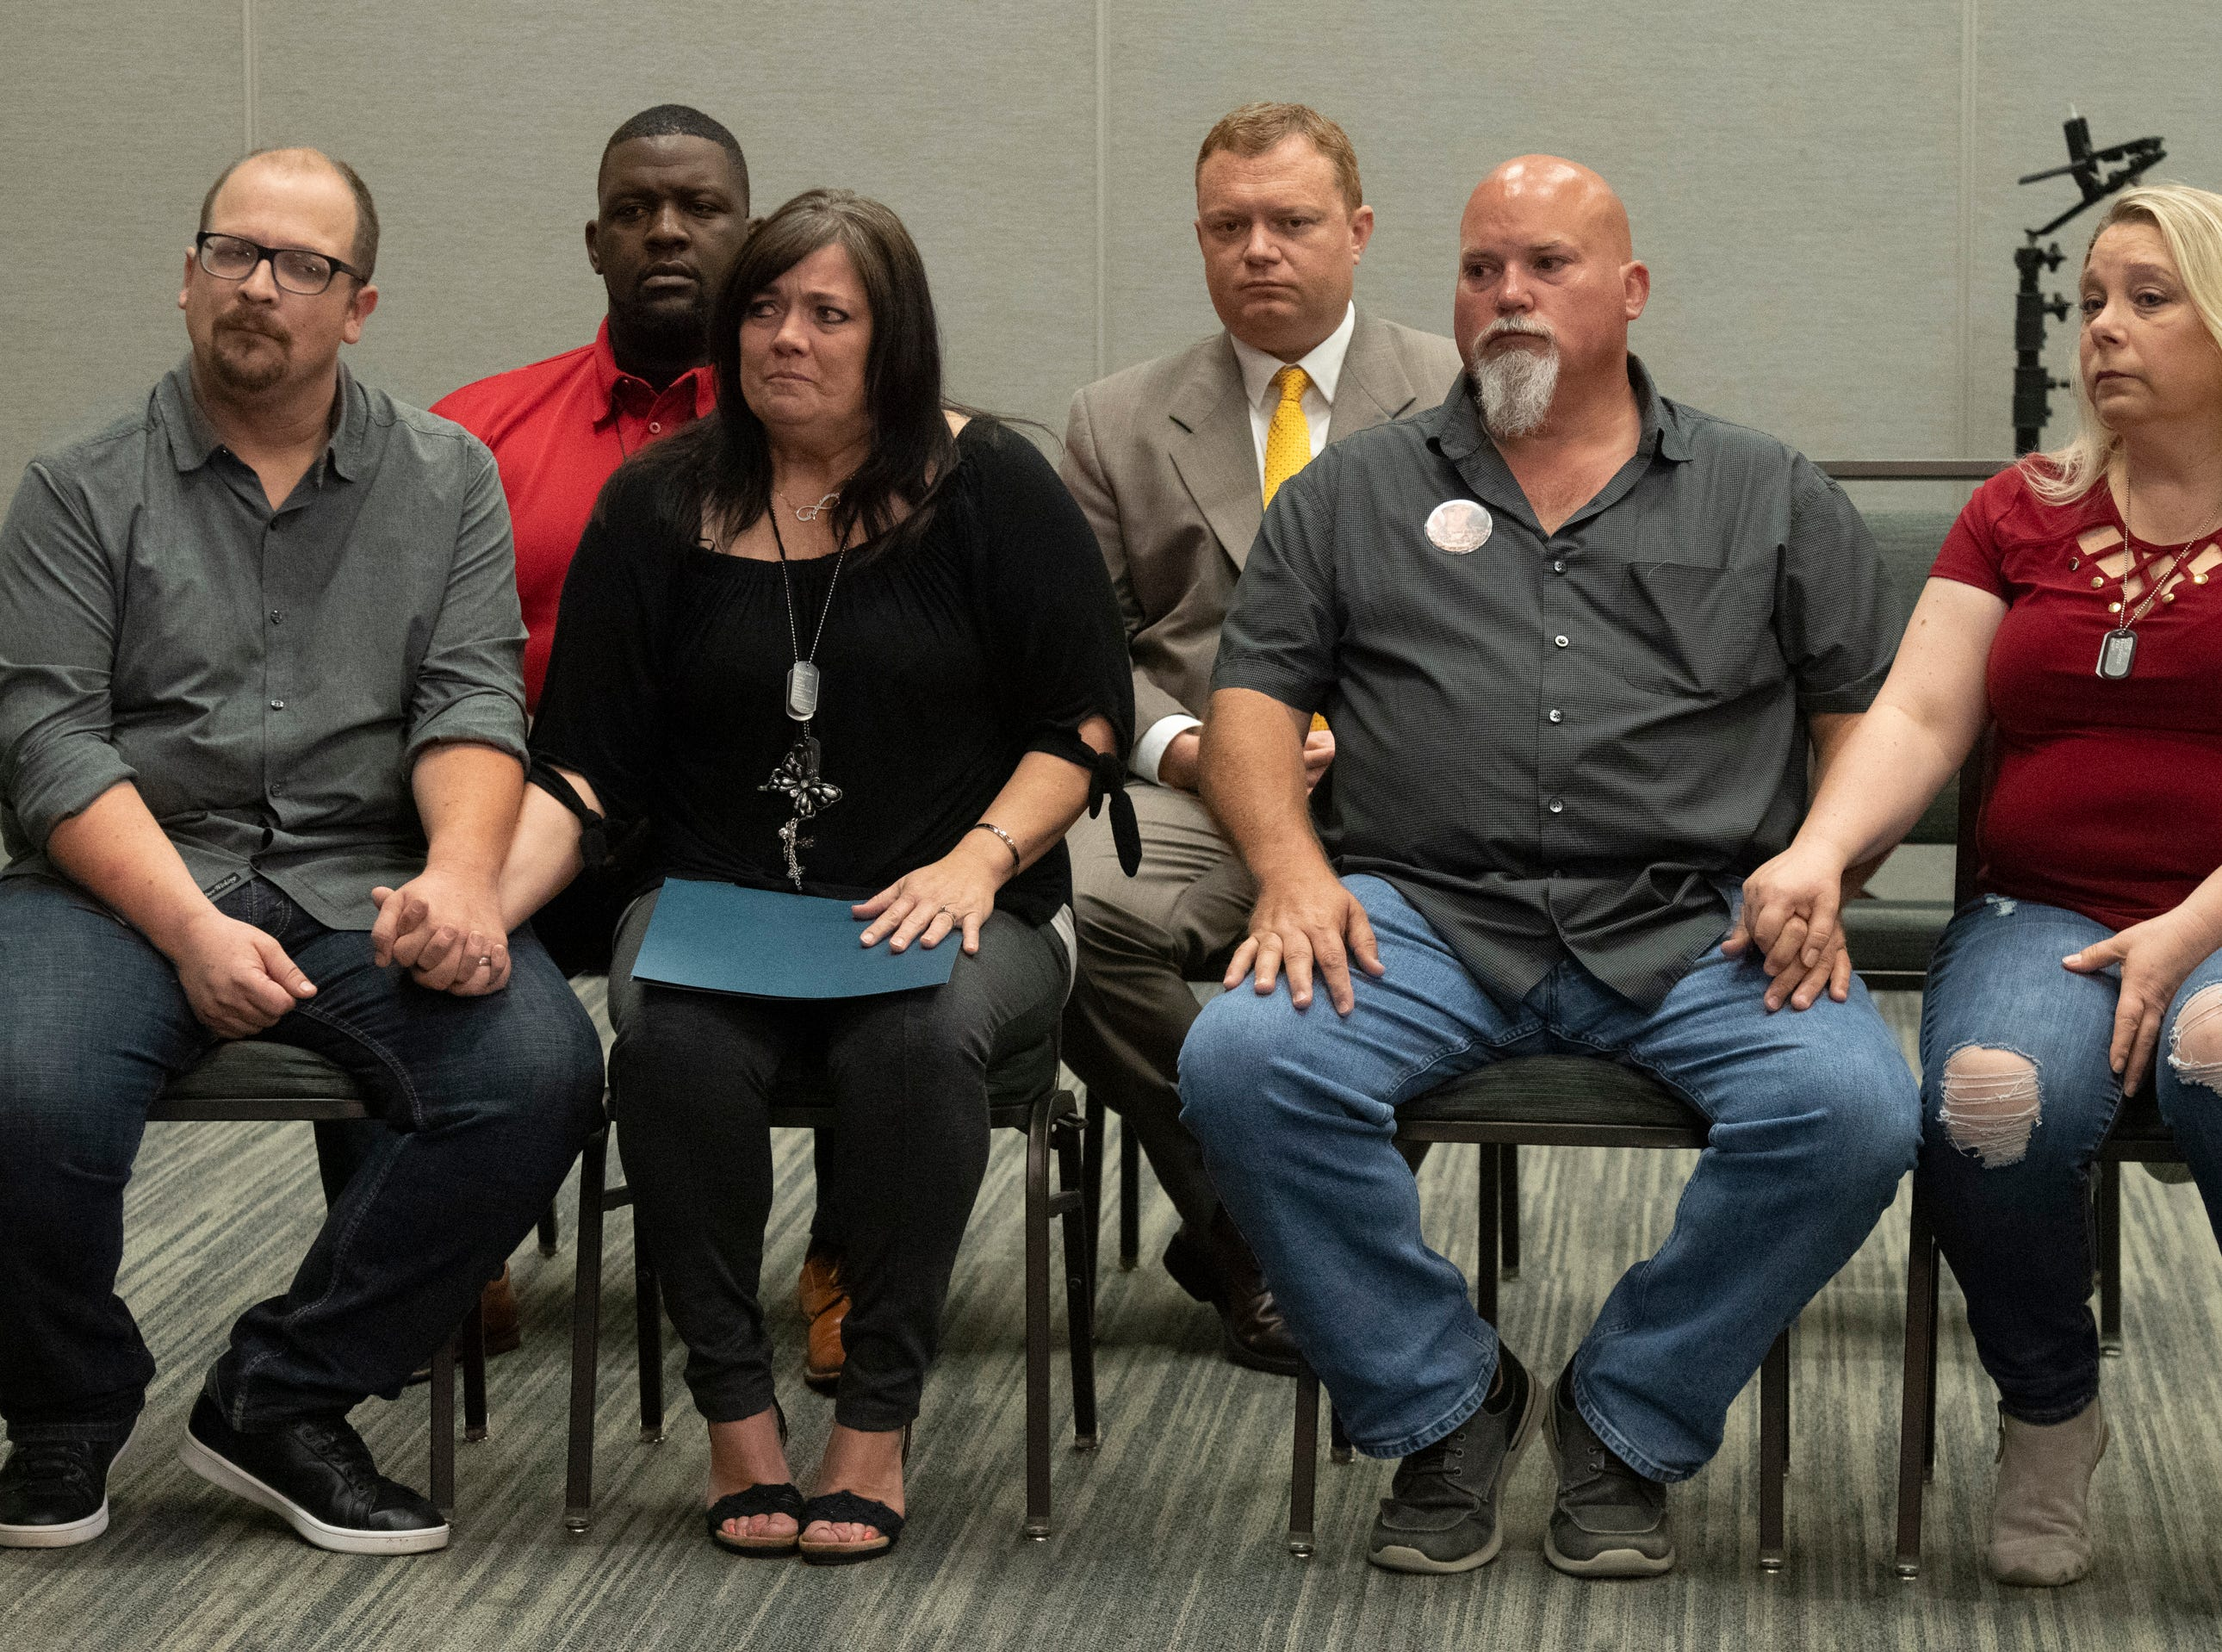 Members of Army veteran Jared Johns' family Gary Bowling (front row from left), Kathy Bowling, Kevin Johns and Kim Grooms attend a press conference at the Greenville Convention Center Friday, May 10, 2019.